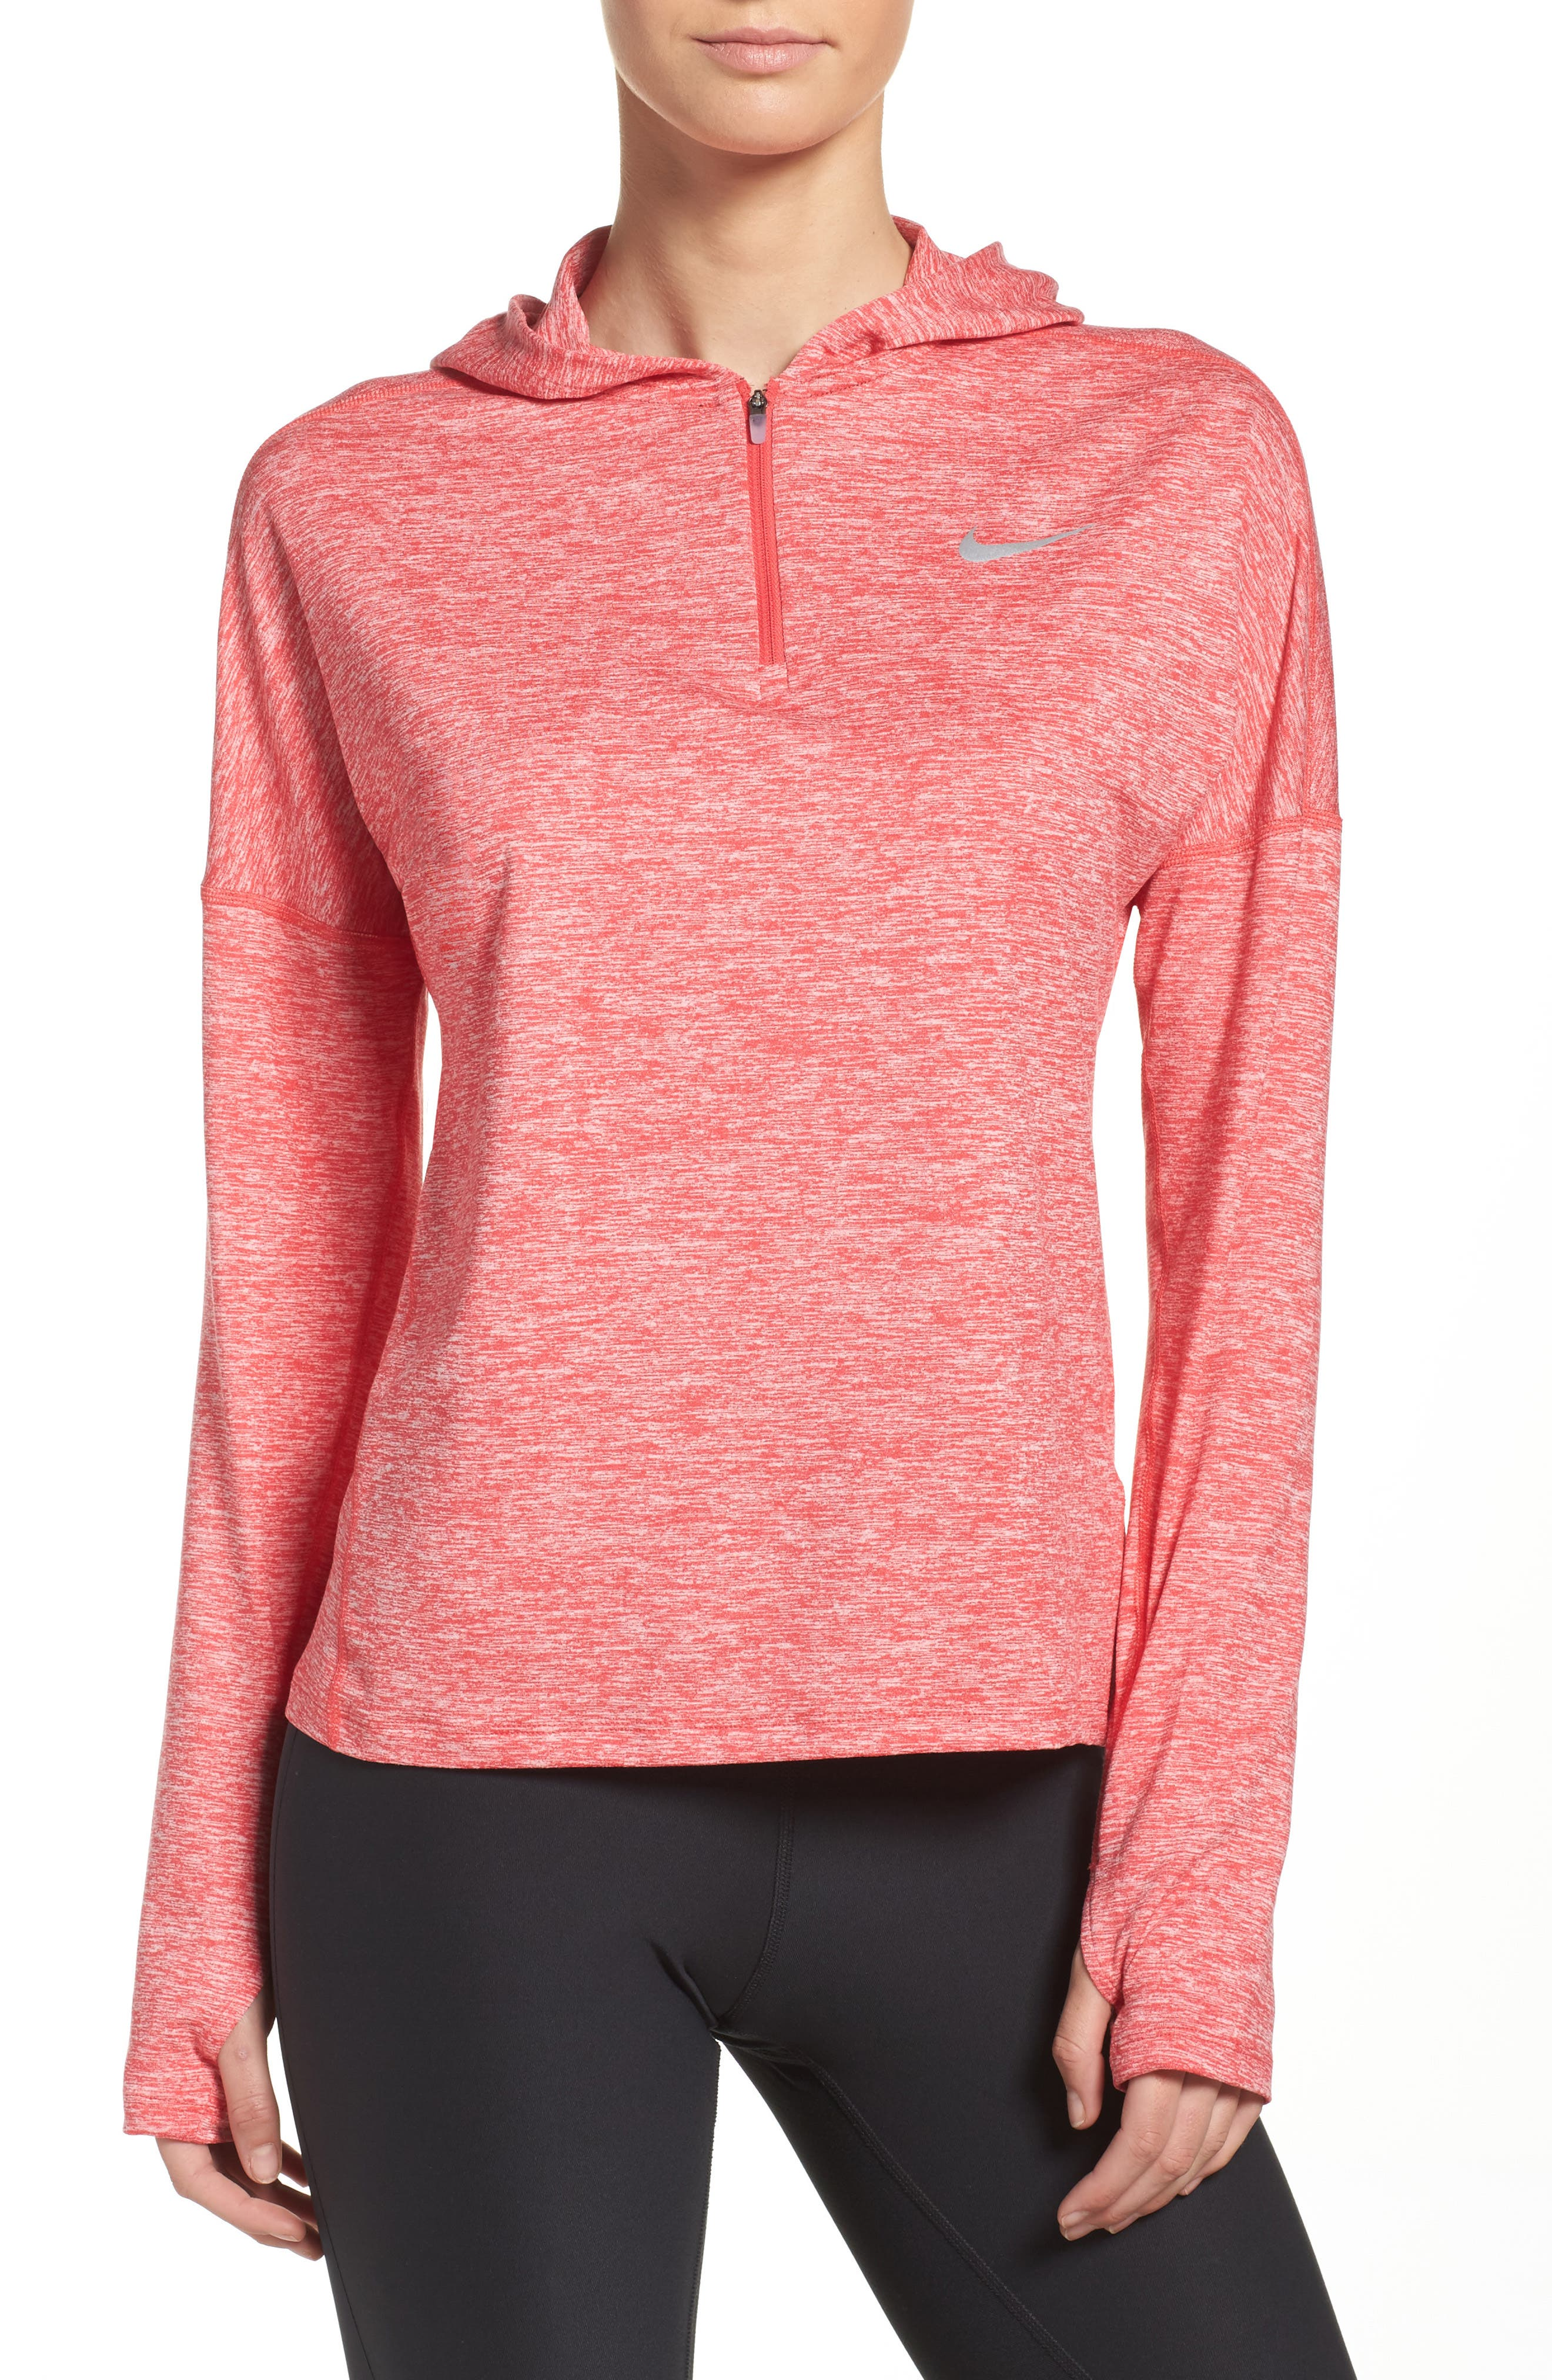 Dry Element Running Hoodie,                             Main thumbnail 1, color,                             Light Fusion Red/ Heather